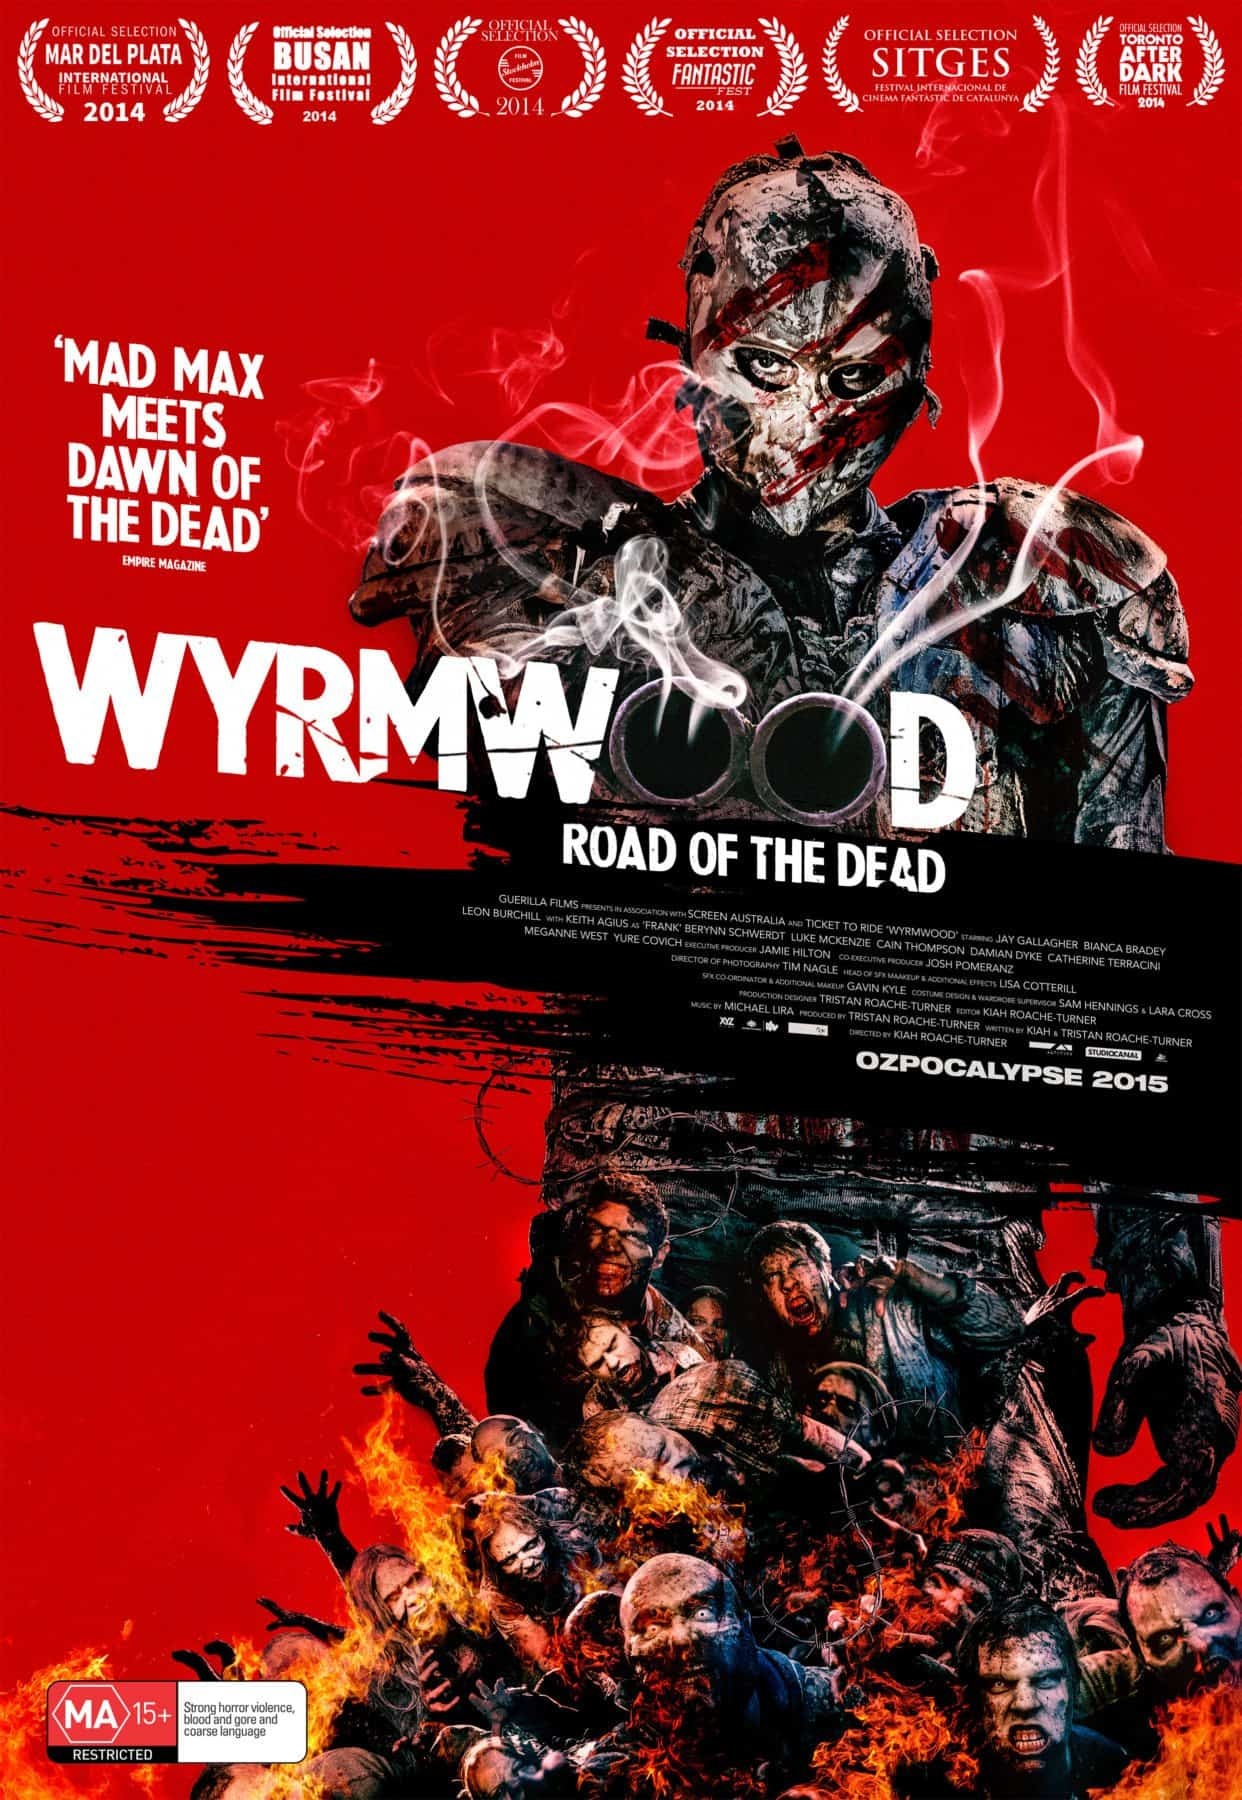 Horror Movie Review: Wyrmwood: Road of the Dead (2014)